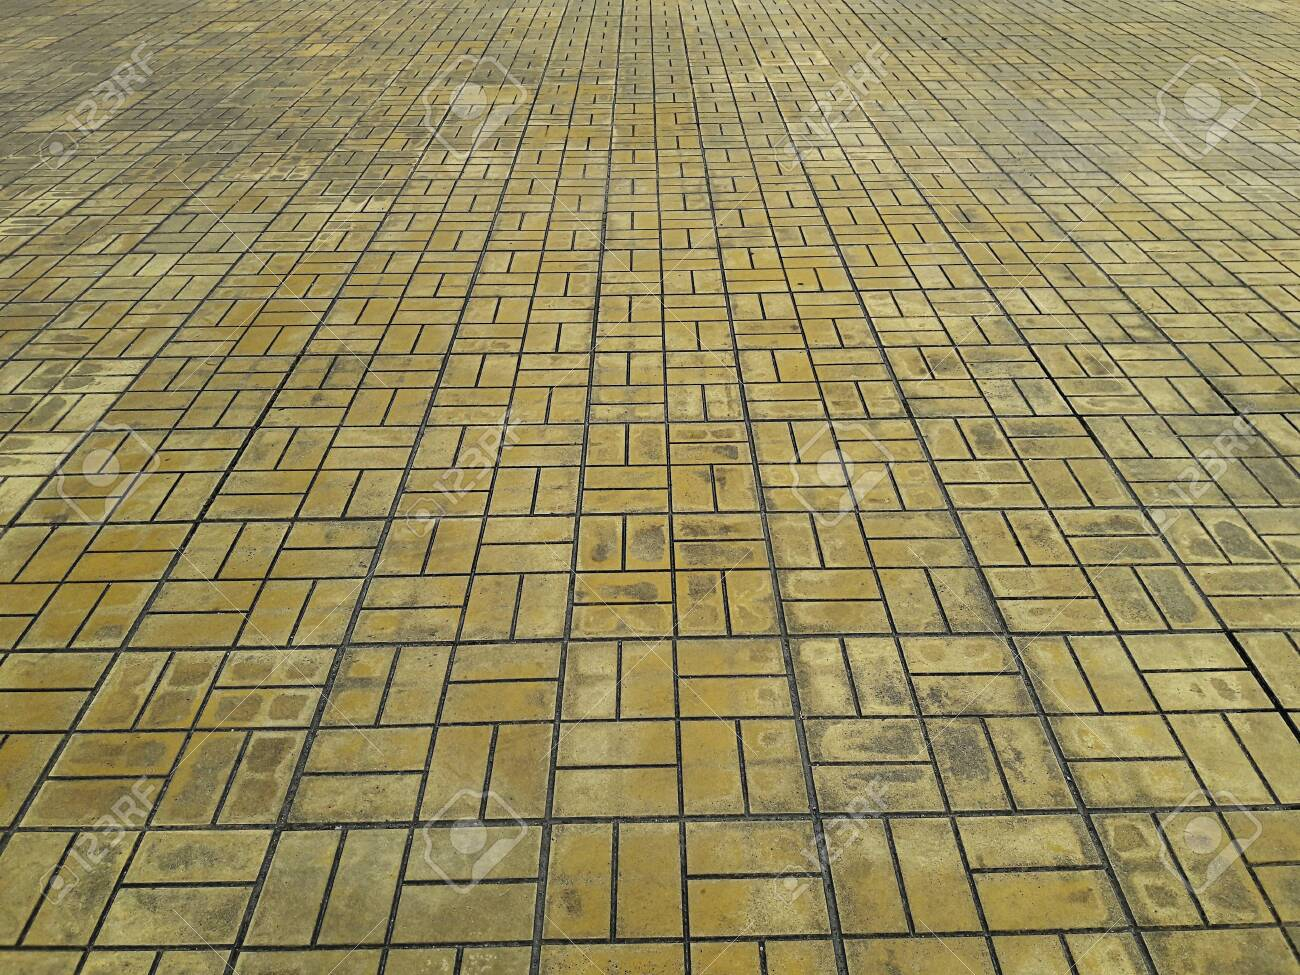 The pattern of tiles on the floor yellow cobblestone road - 128553086